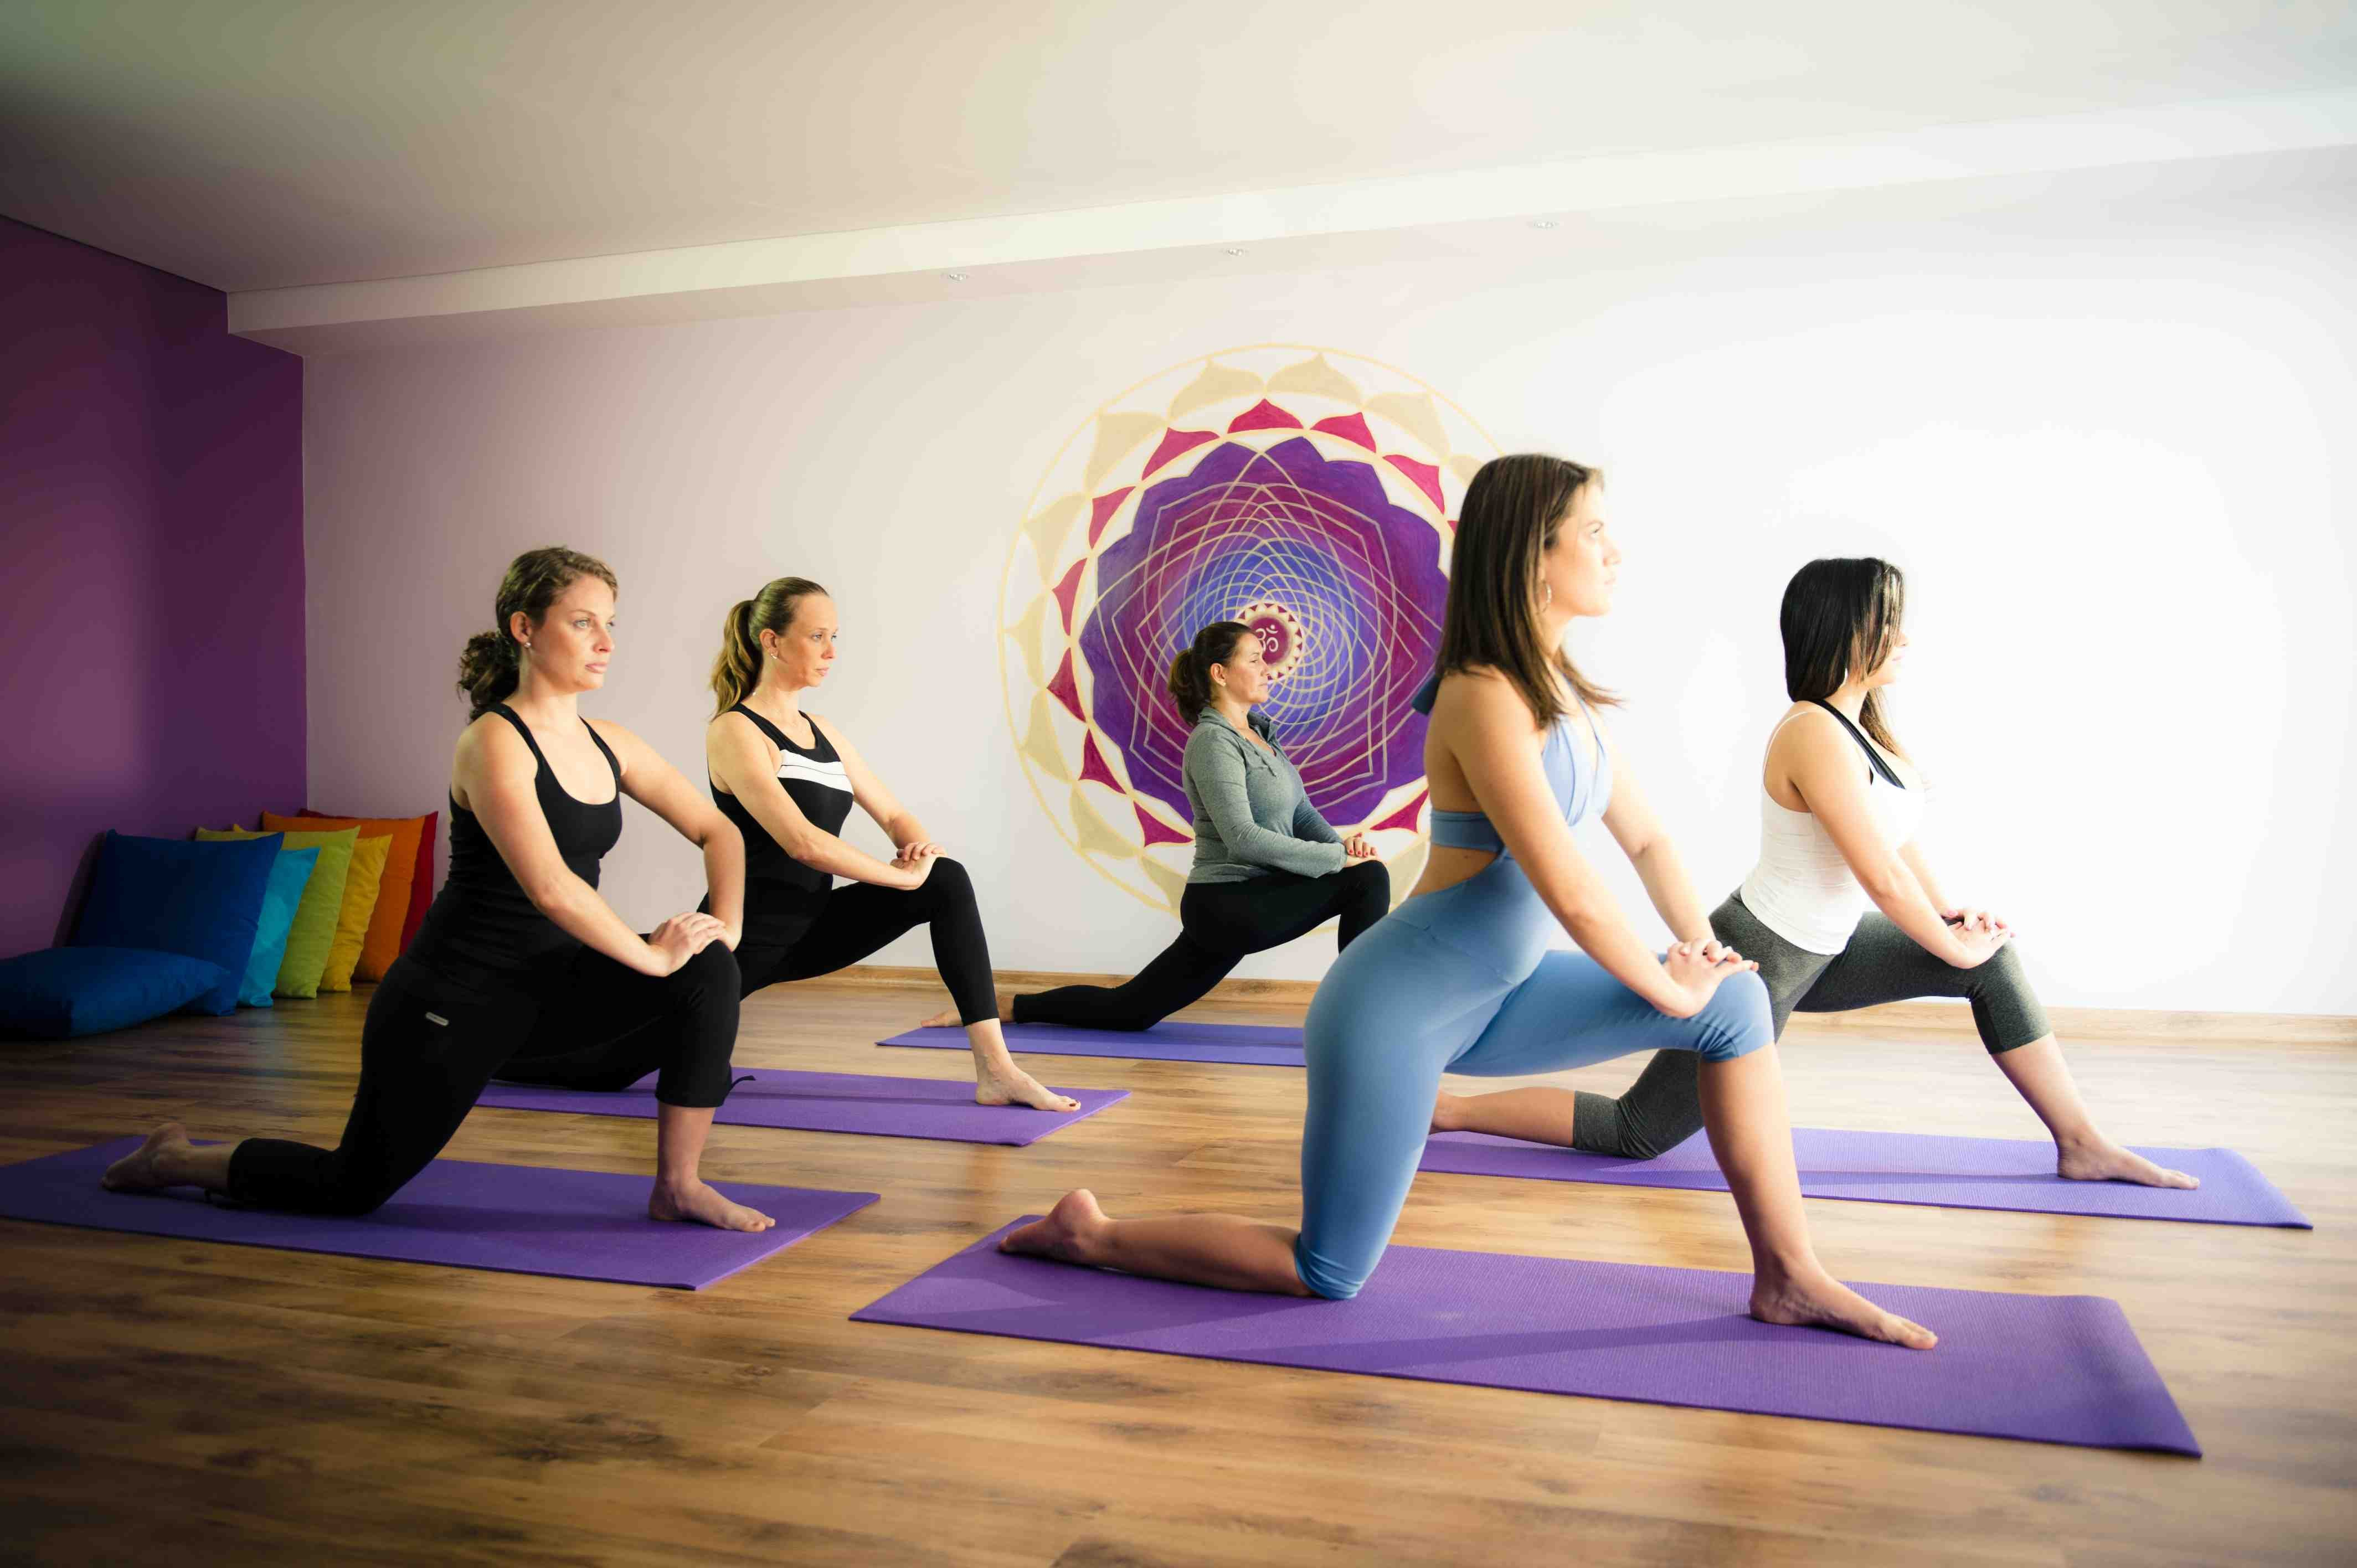 For Some People, Learning Yoga on CD-ROM is a Stretch